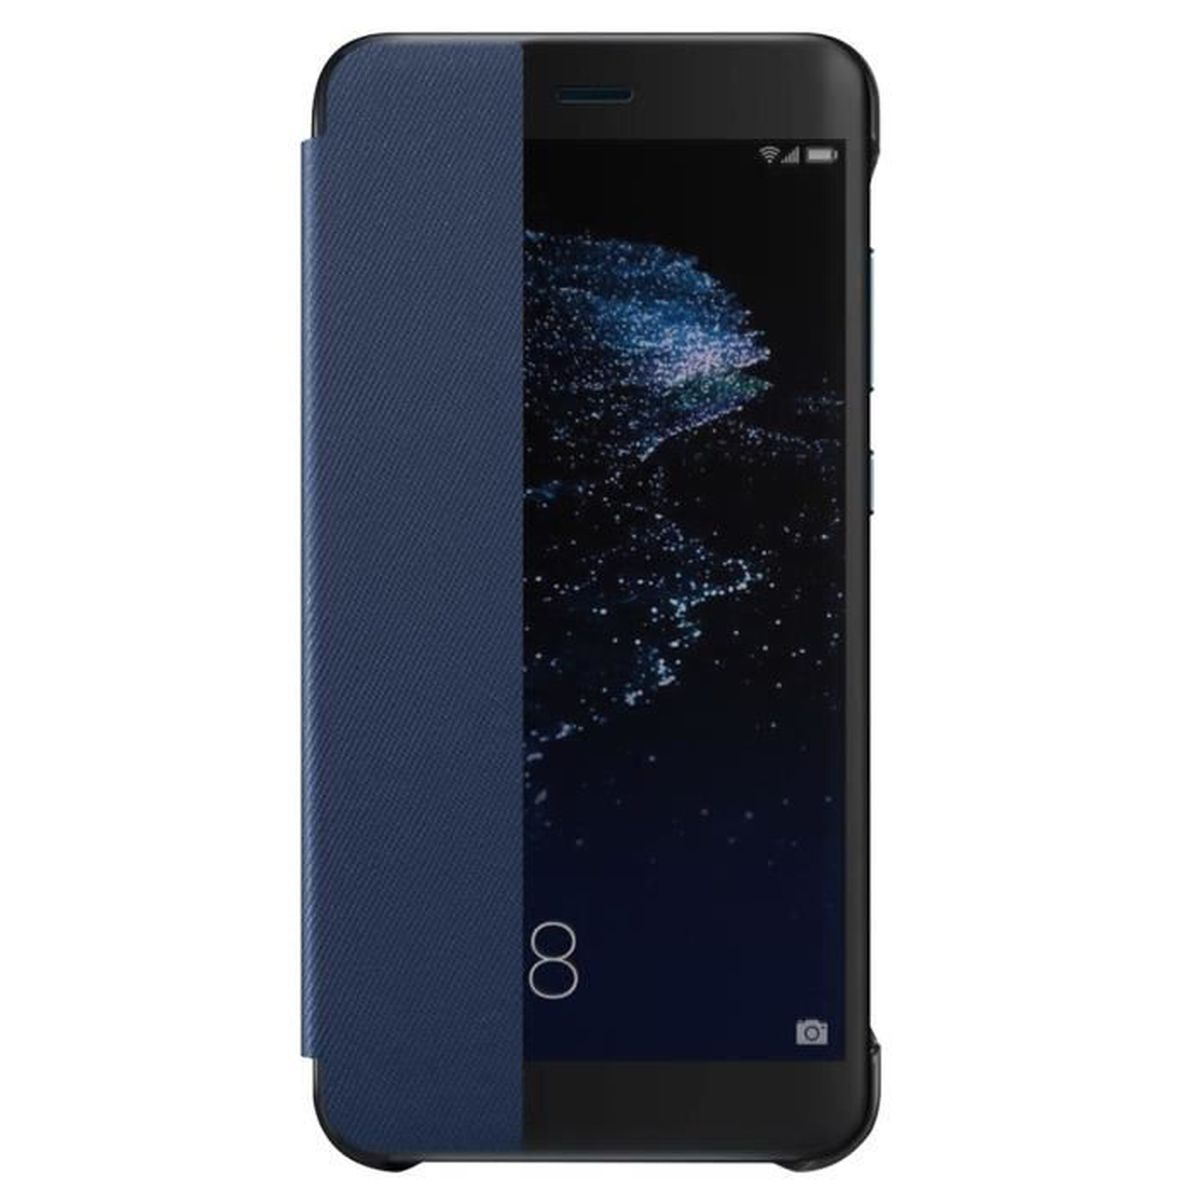 etui huawei p10 lite s view bleu avec fen tre officiel. Black Bedroom Furniture Sets. Home Design Ideas